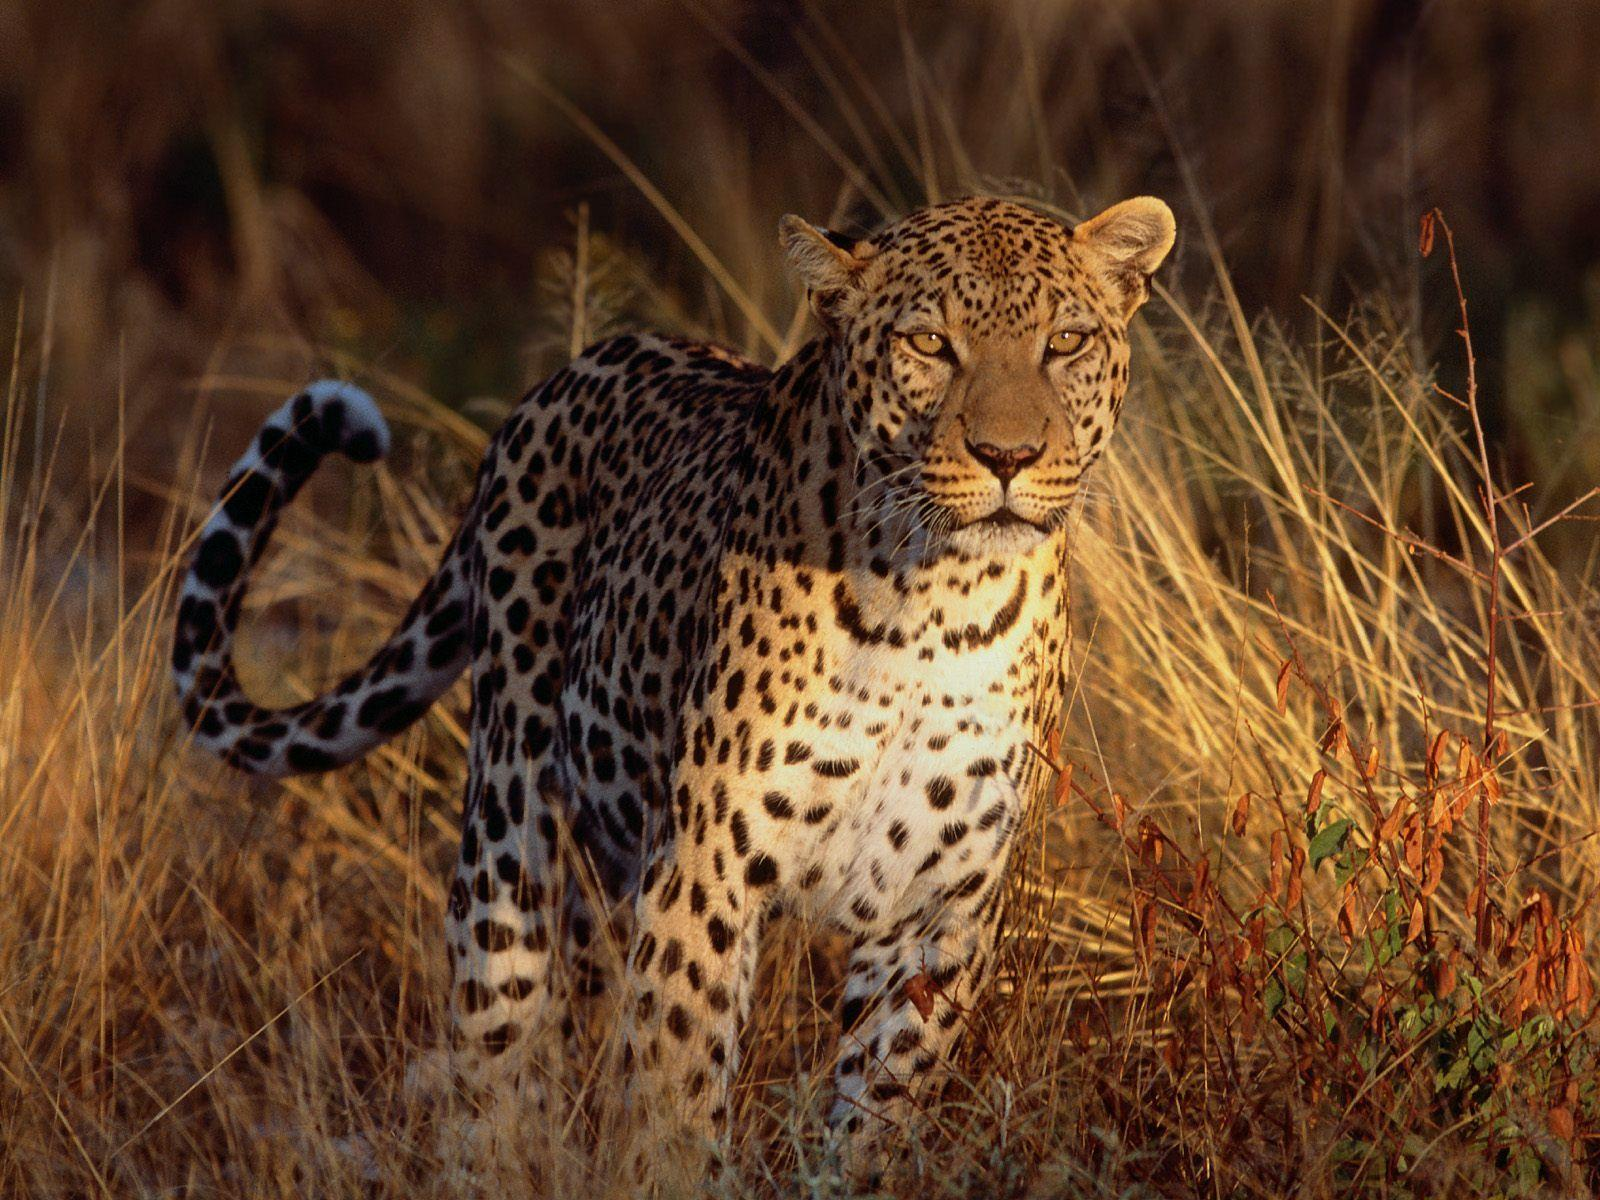 Leopard wallpapers wallpaper cave intense focus leopard wallpapers hd wallpapers voltagebd Image collections